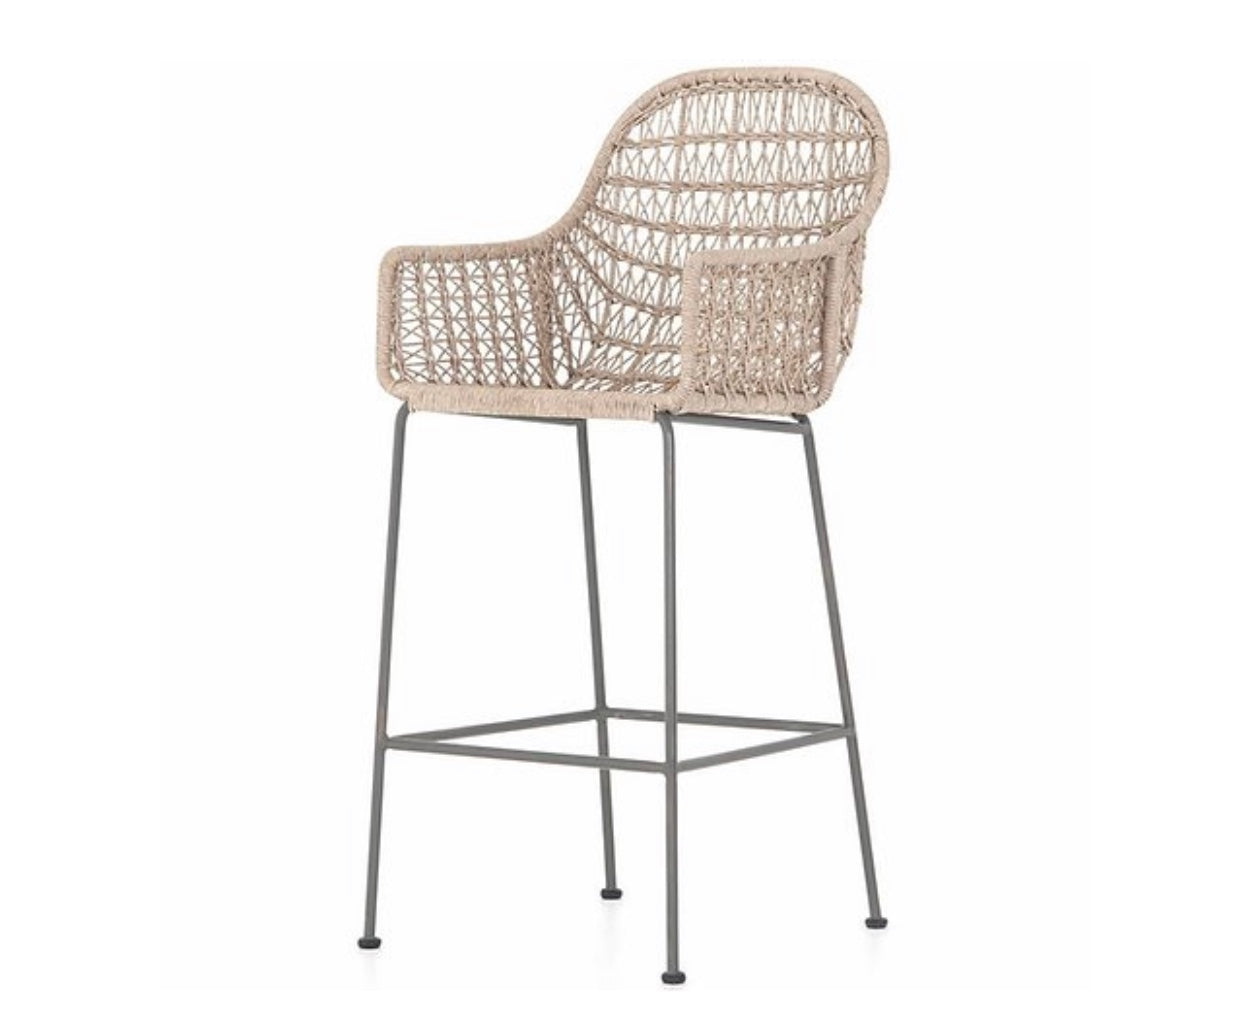 Basket High Chair